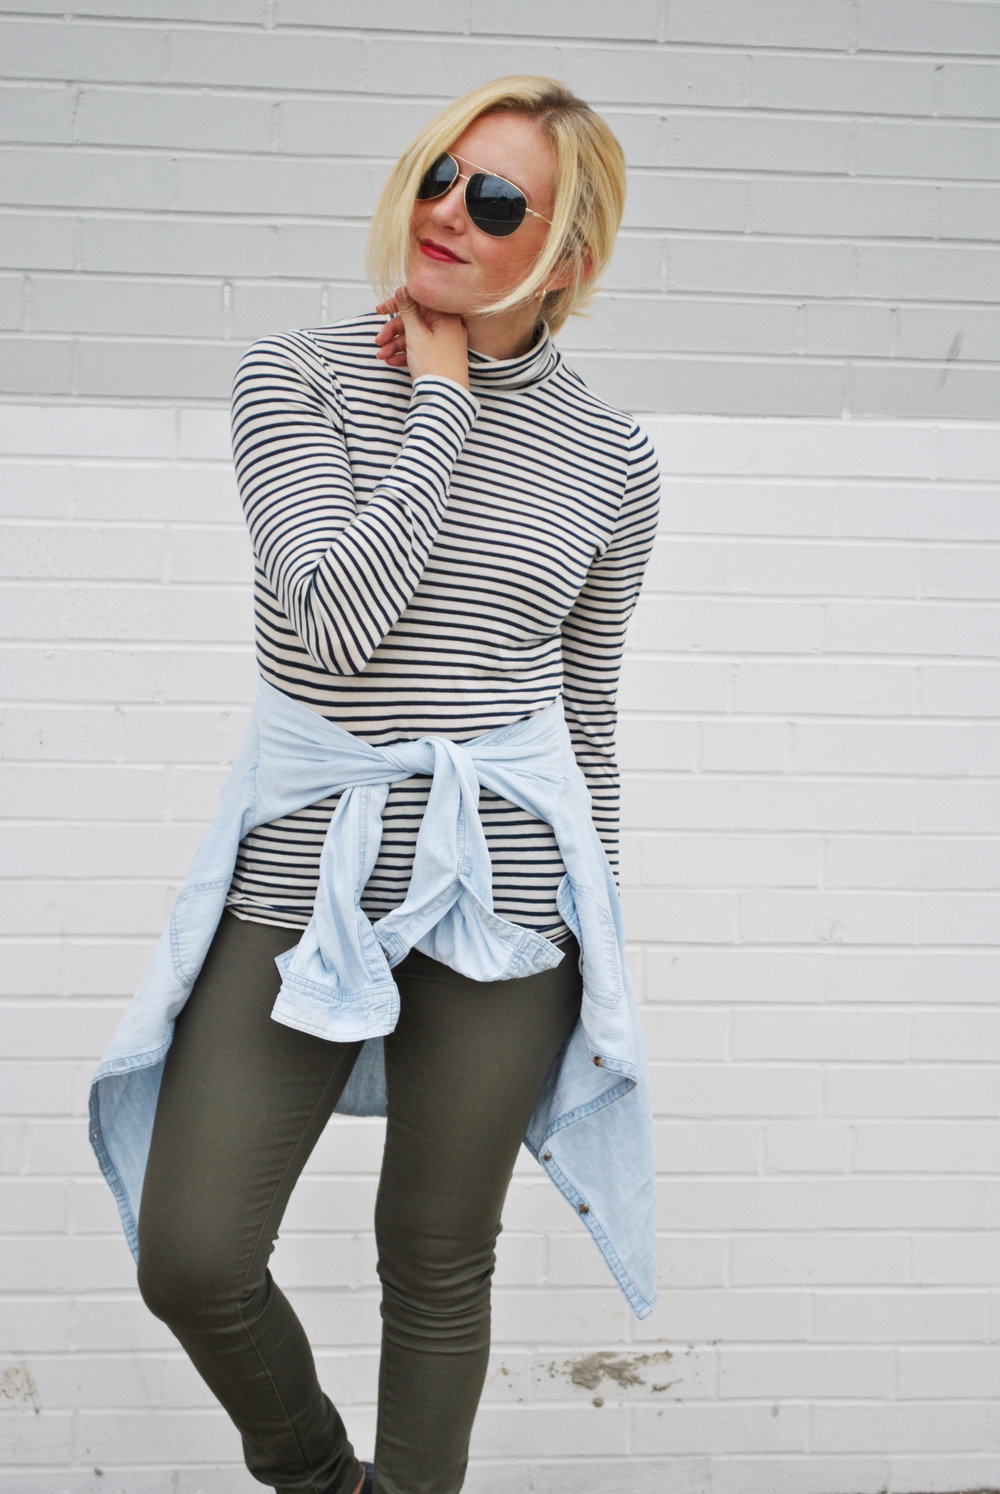 thoughtfulwish | j.crew // preppy style // fblog / fashion blog // stripes // chambray // layers // fall outfit // fall look // fall wear // meredith wish // boston fashion